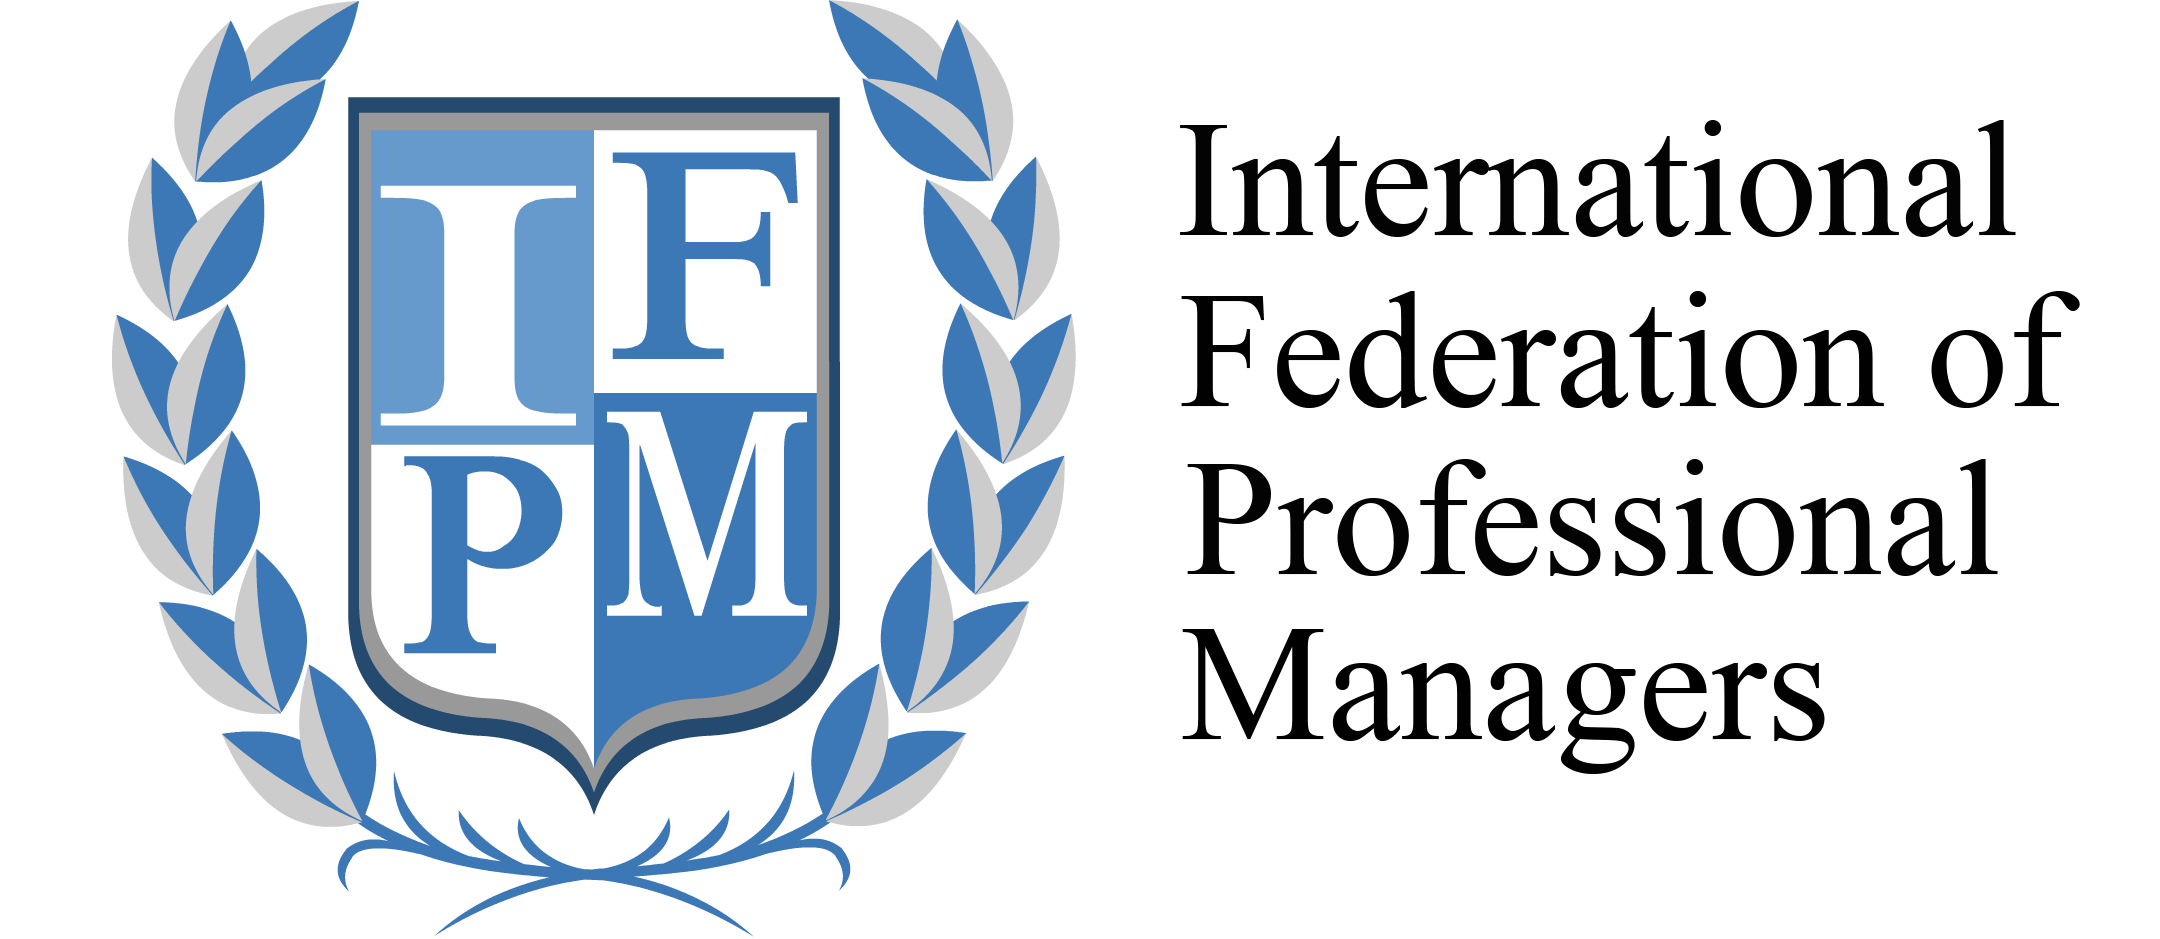 Certified Human Resource Professional Program Ifpm Philippines